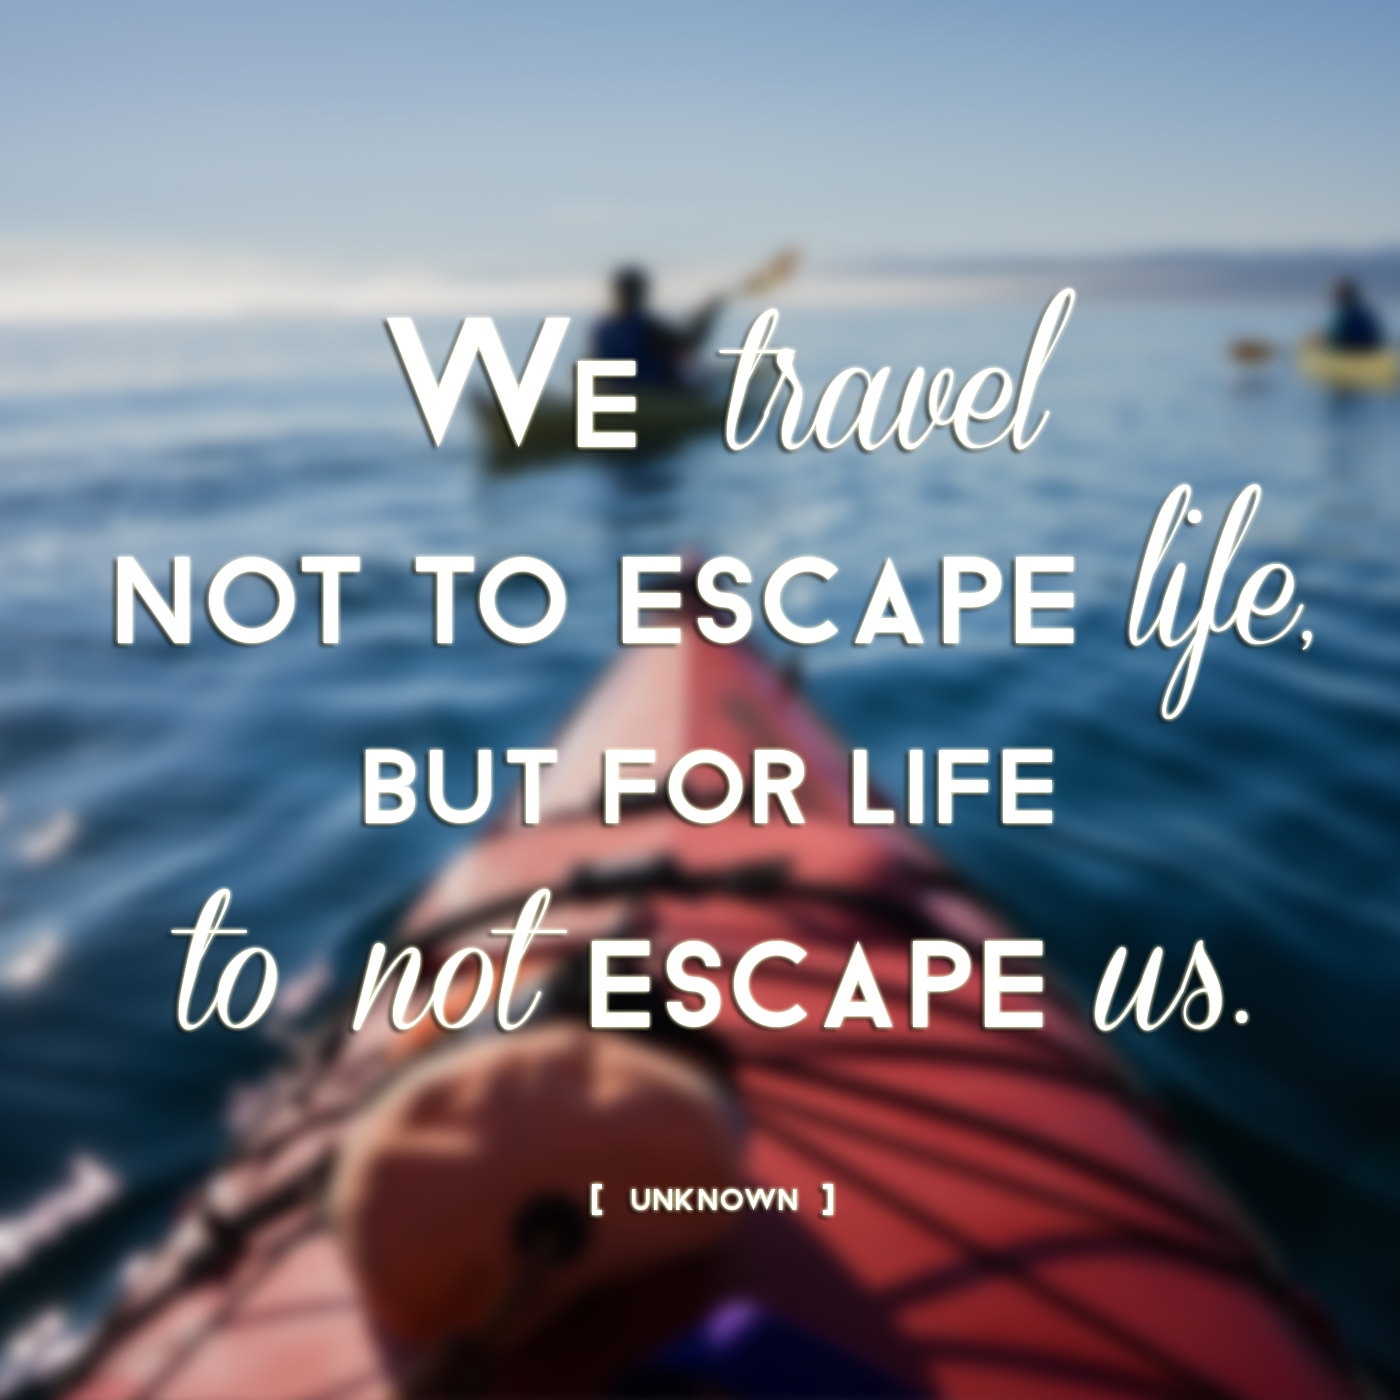 A Collection Of Famous And Inspirational Travel Quotes (w. Birthday Quotes Related To Flowers. Trust Quotes Unknown Authors. Travel Quotes Stickers. Famous Quotes By Winston Churchill. Coffee Needed Quotes. Harry Potter Quotes For Graduation. Family Quotes Mark Twain. Marriage Quotes Gordon B Hinckley